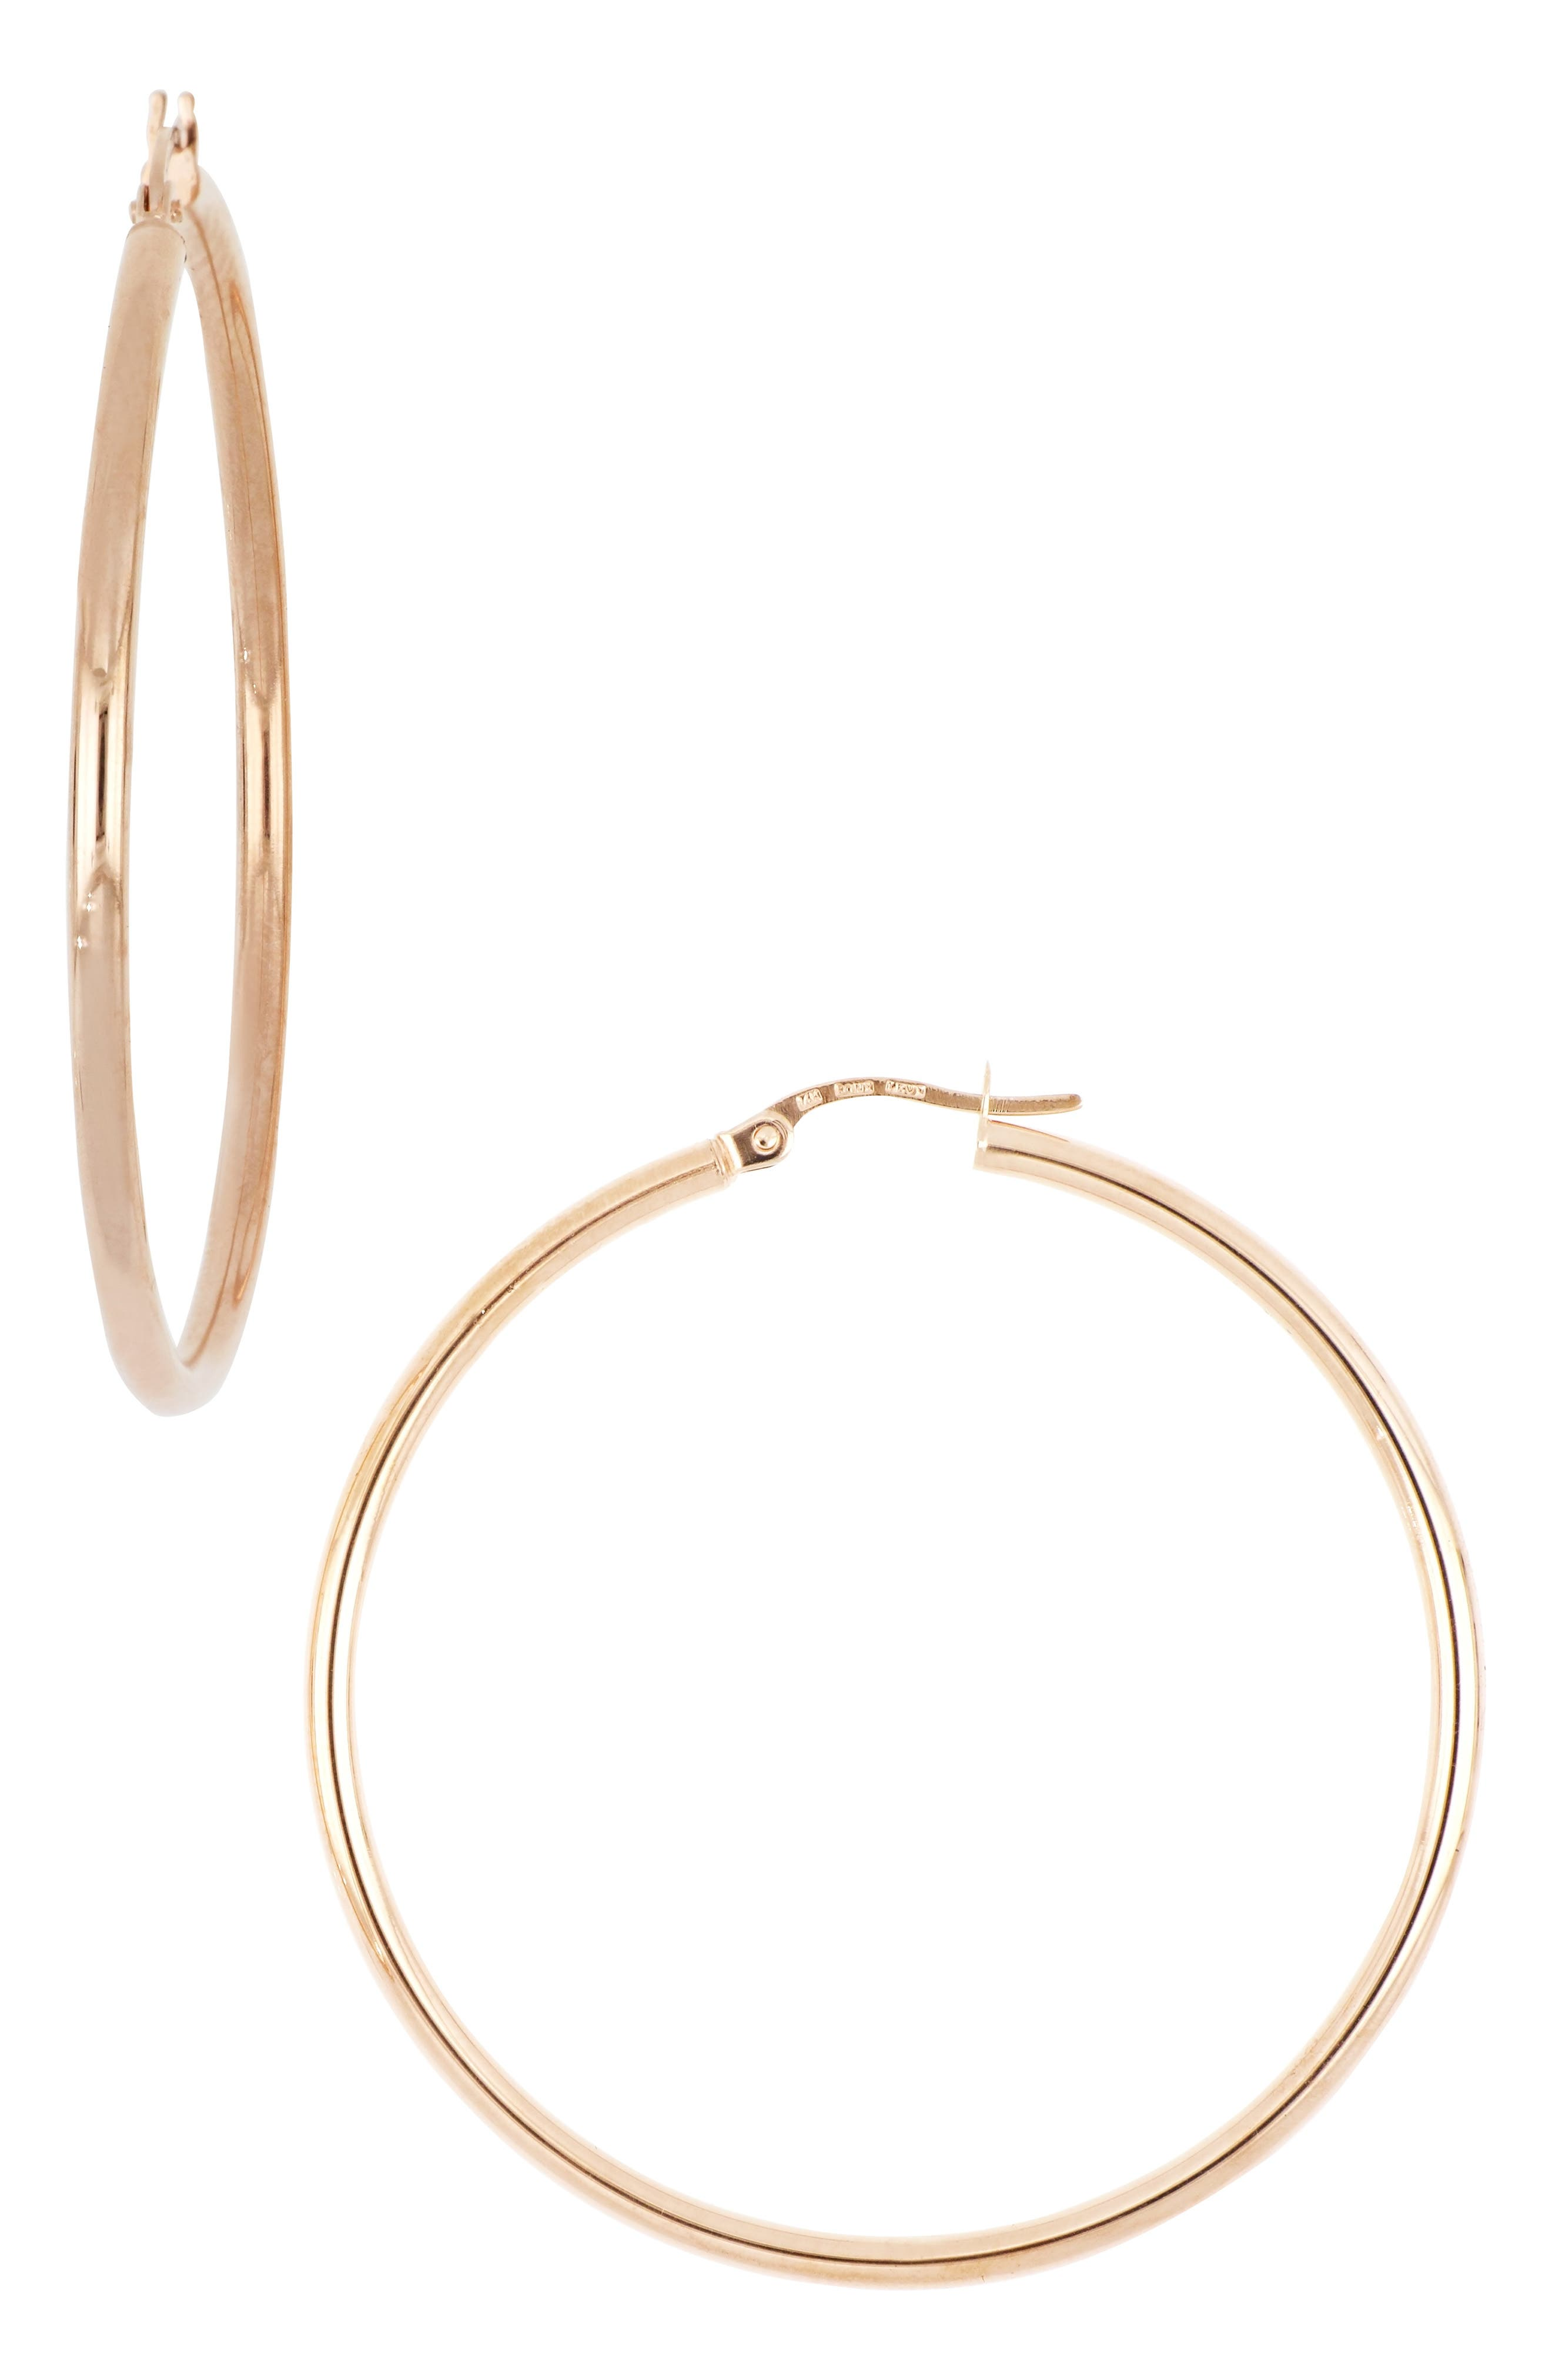 Simple and timeless, wardrobe-essential hoops with the warm and rich gleam of 14-karat gold are handcrafted in Italy. Style Name: Bony Levy 14K Gold Hoop Earrings, 45mm (Nordstrom Exclusive). Style Number: 5820854. Available in stores.